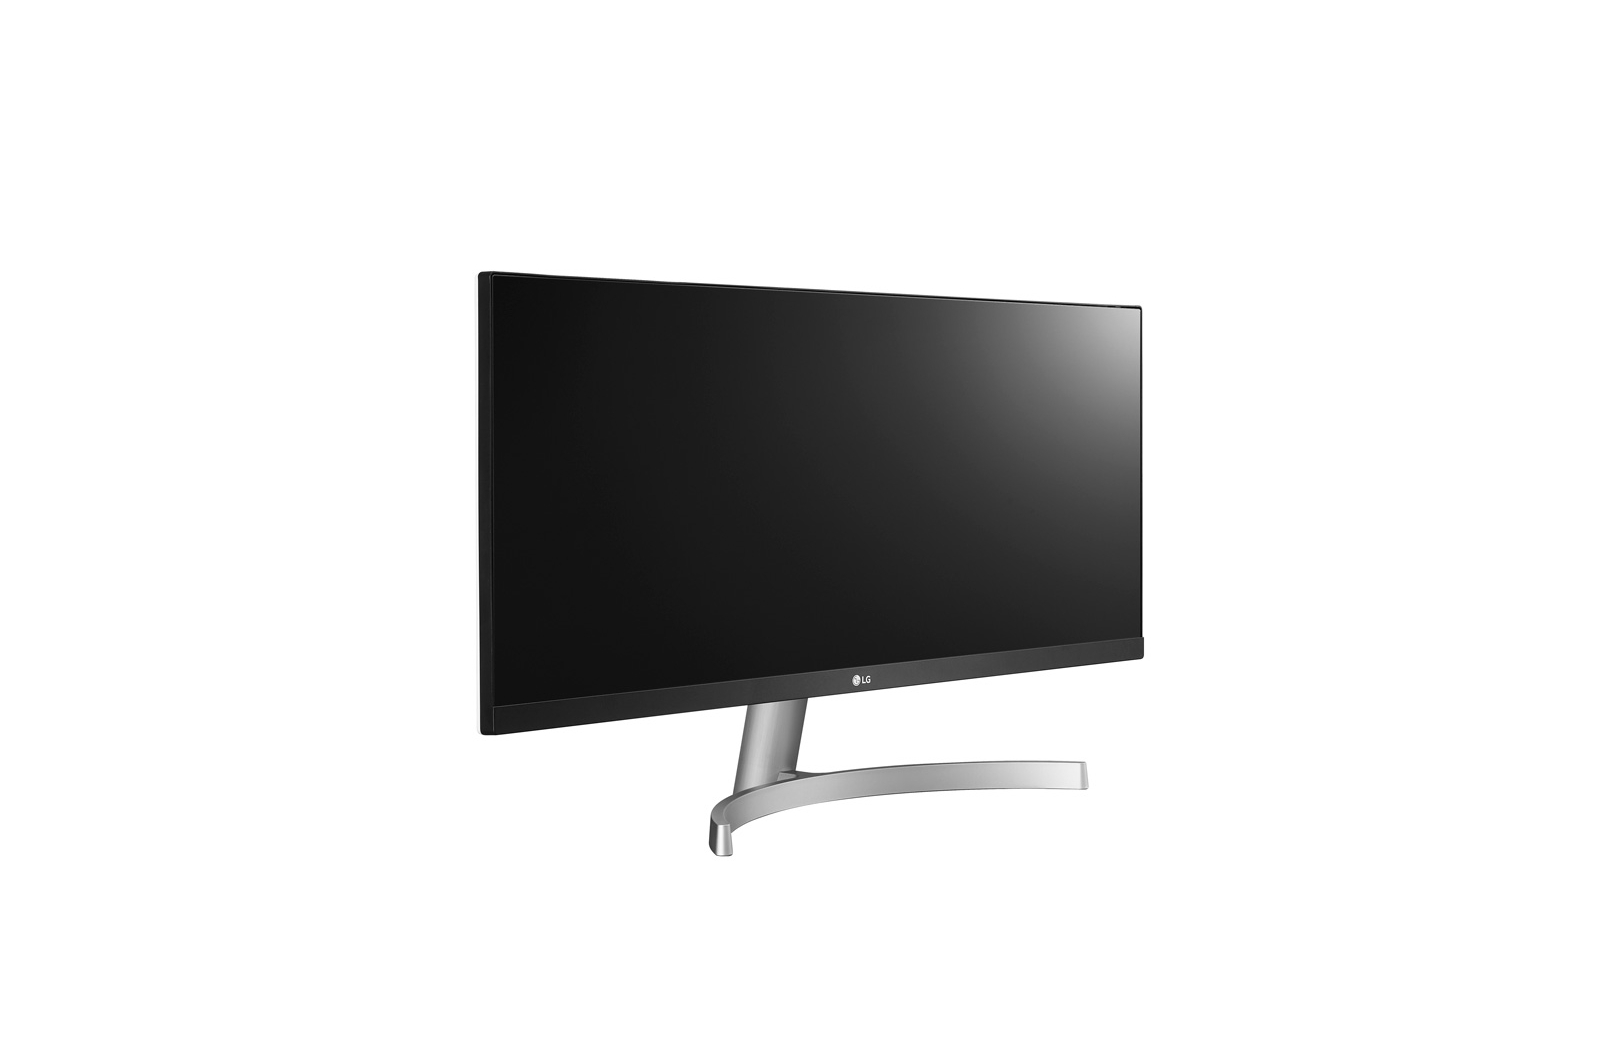 LG 29'' Class 21:9 UltraWide™ Full HD IPS LED Monitor with HDR